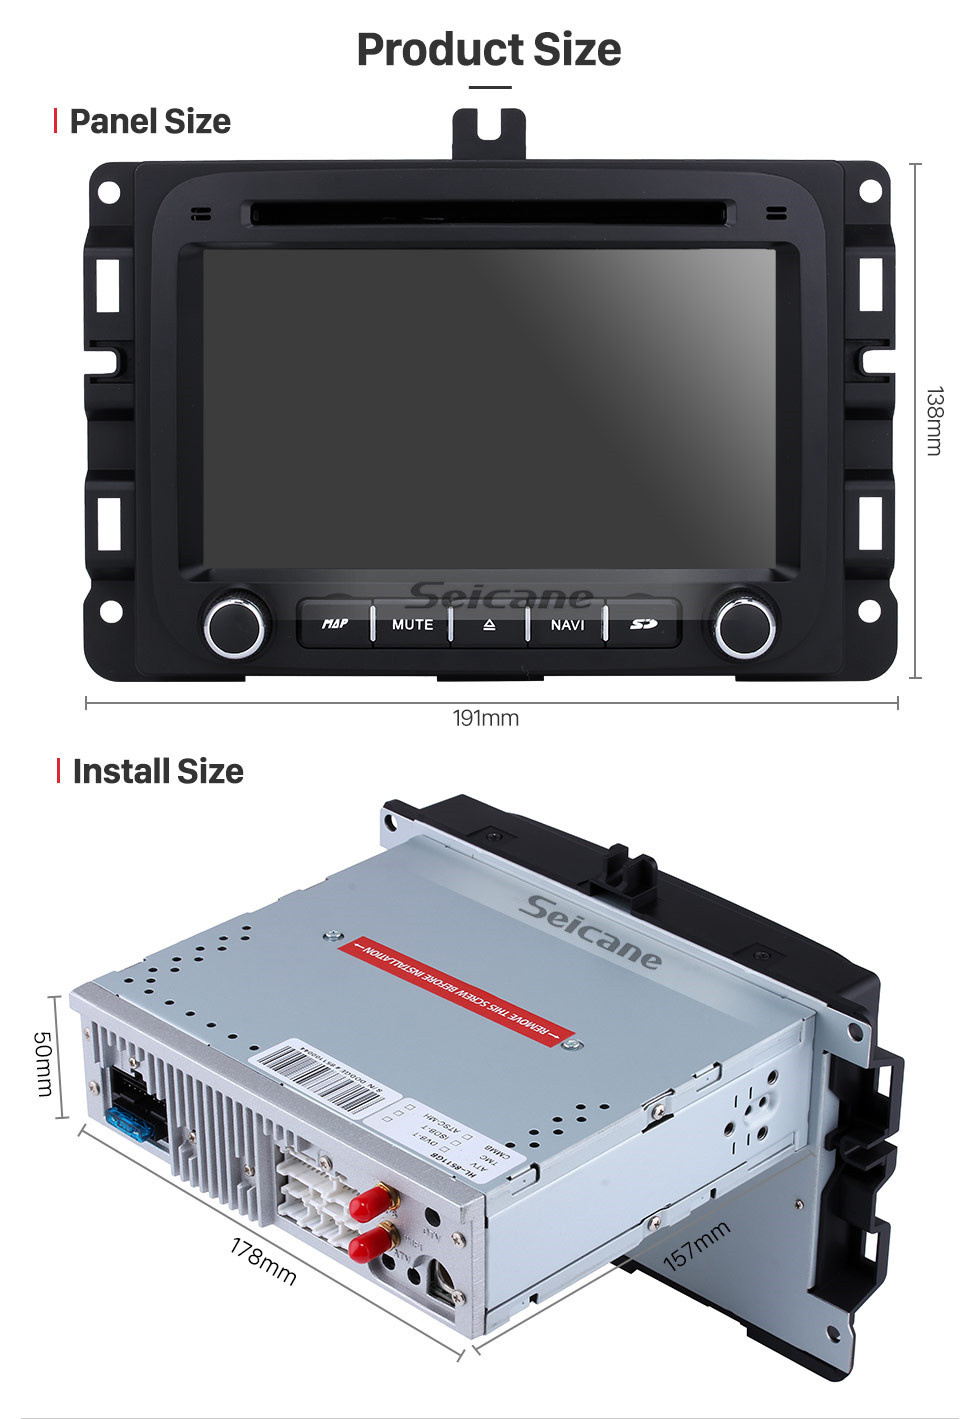 Seicane Android 10.0 7 inch HD Touch Screen DVD Player for 2013-2015 Dodge Ram 1500 2500 3500 4500 Radio GPS Navigation Bluetooth WIFI Support TV Backup Camera steering wheel control USB SD 1080P Video